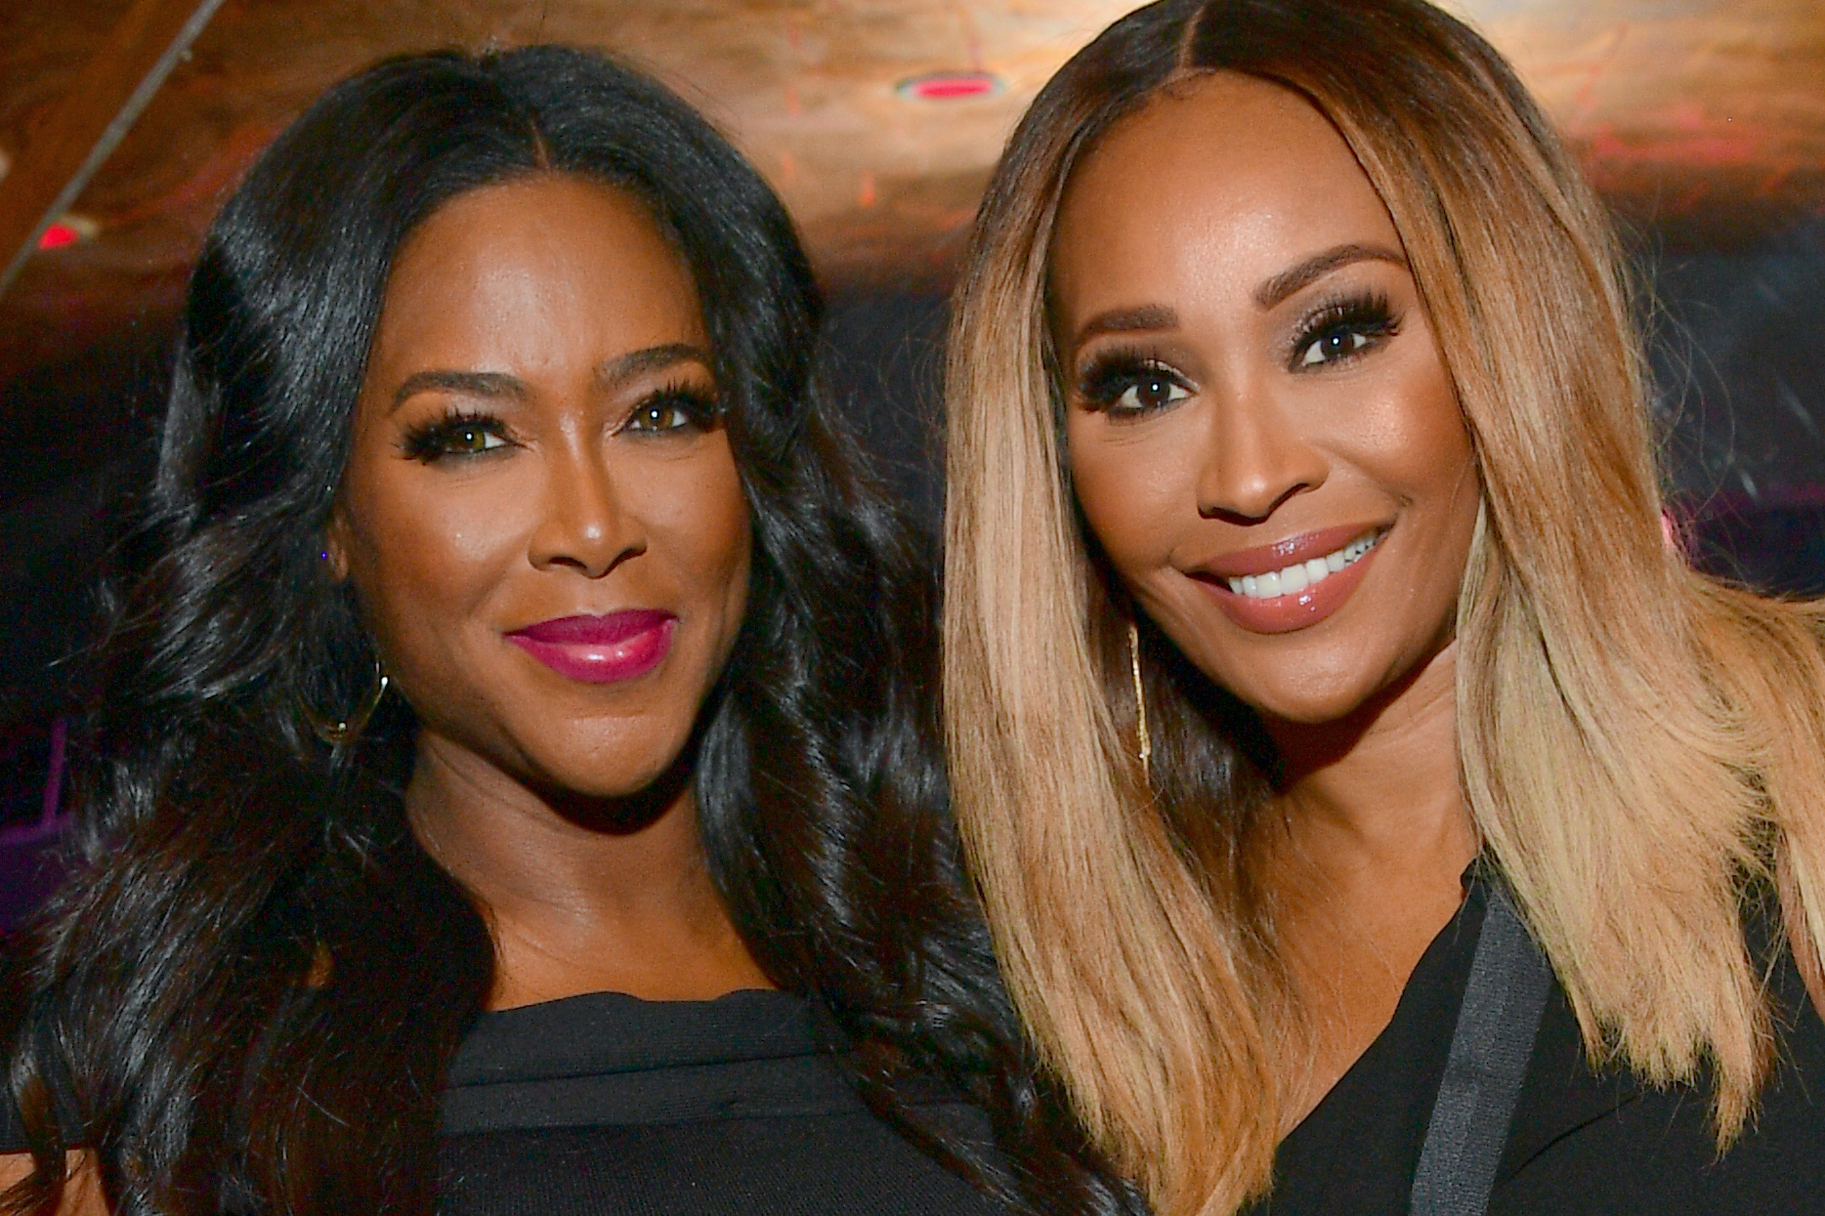 Kenya Moore and Cynthia Bailey Fired from the Real Housewives of Atlanta?